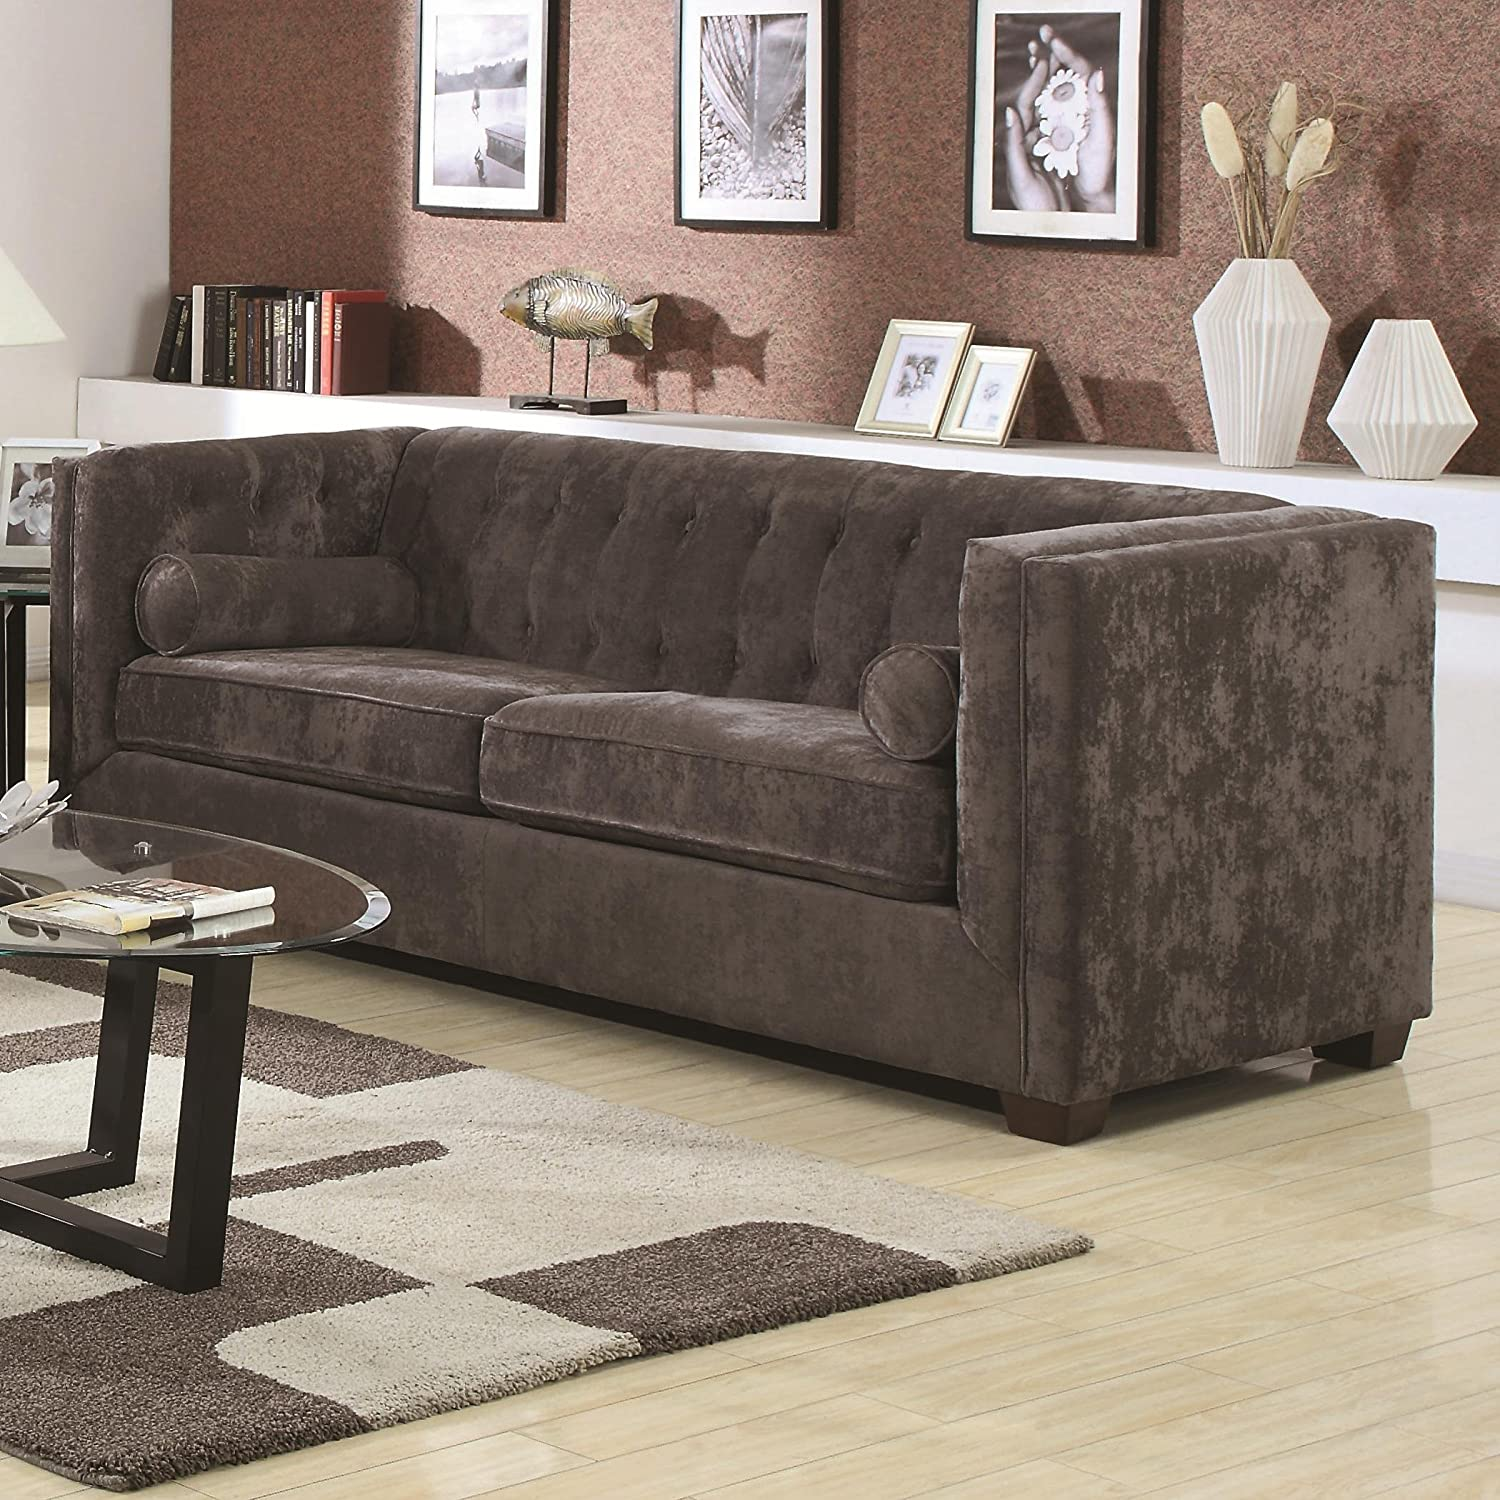 Amazon Coaster Alexis Transitional Chesterfield Sofa in